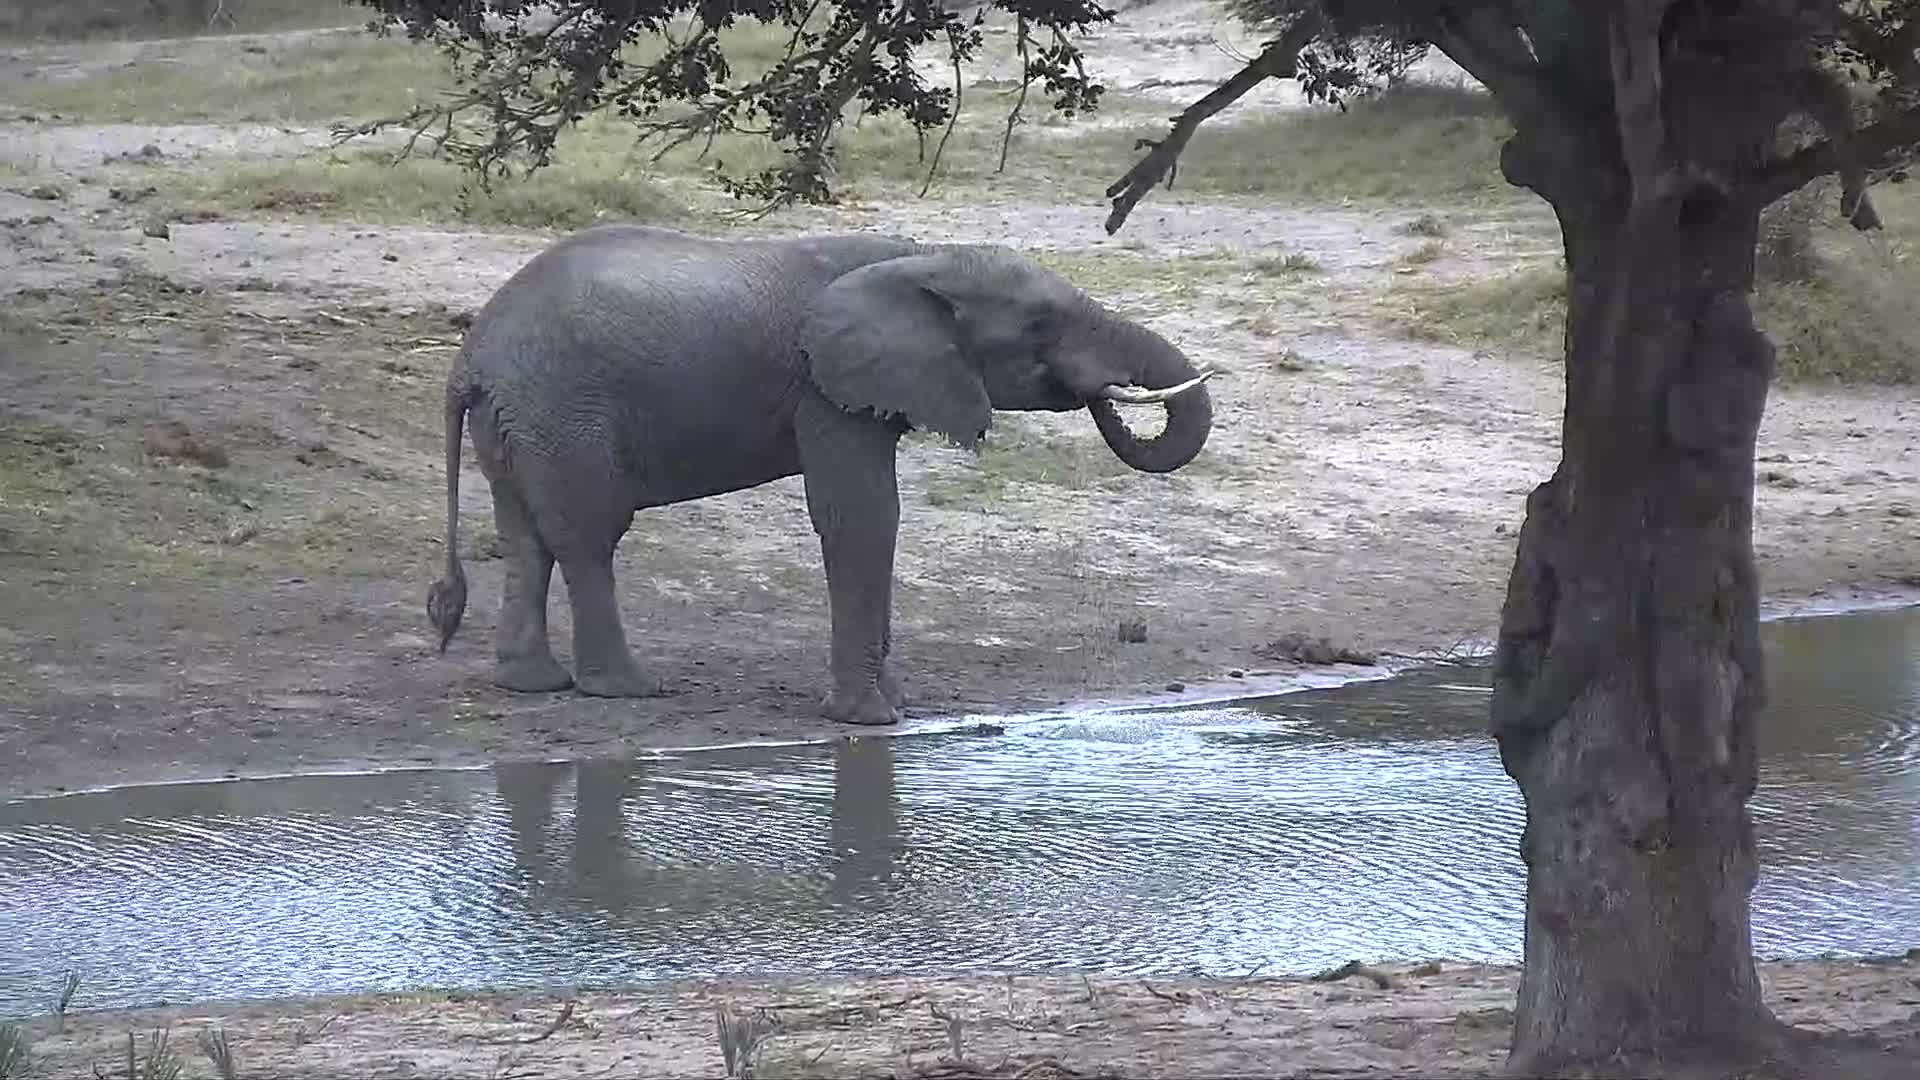 VIDEO: Elephant has a drink at the waterhole